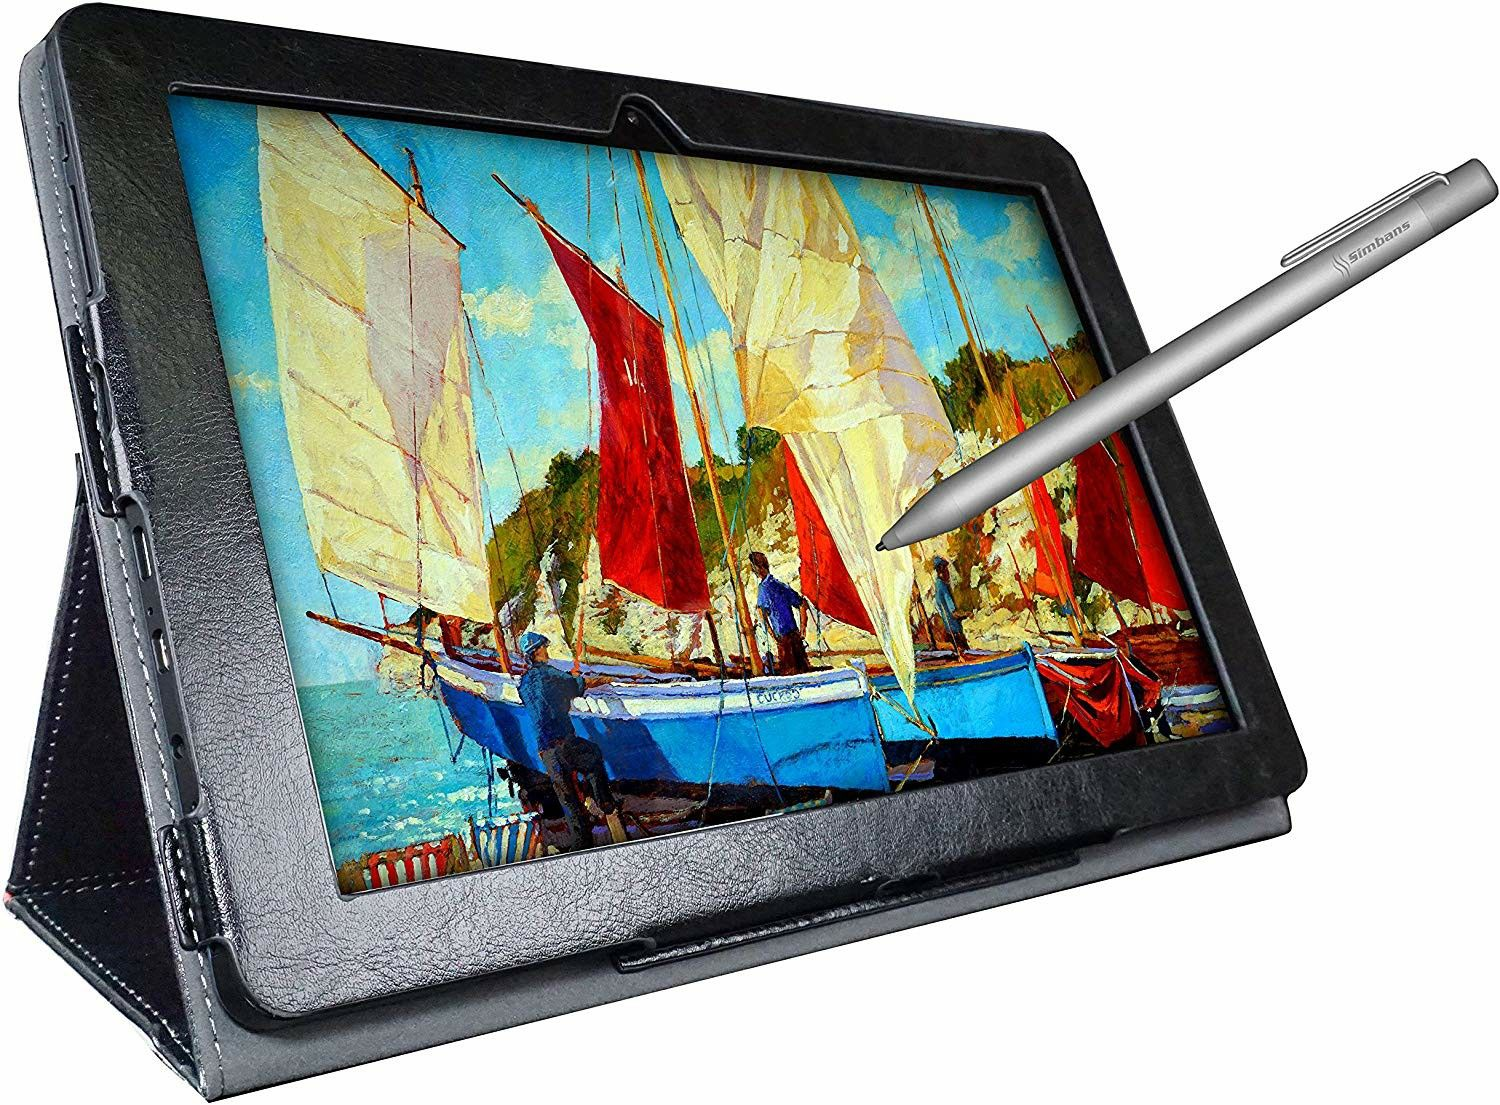 3 Bonus Items Simbans Picassotab 10 Inch Drawing Tablet And